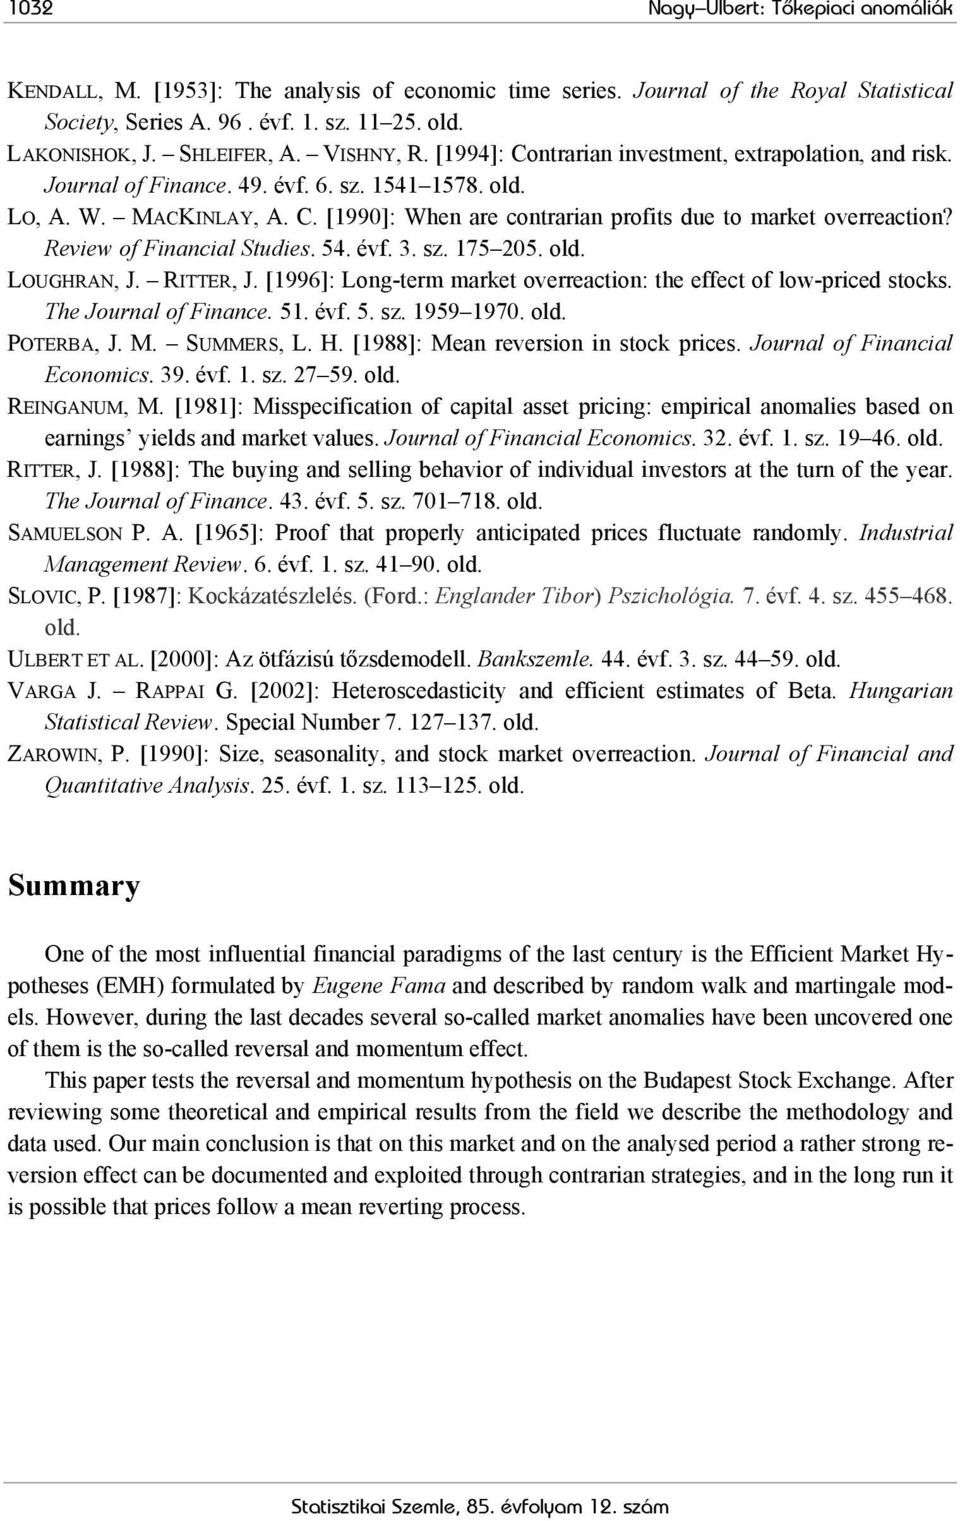 Review of Financial Studies. 54. évf. 3. sz. 175 205. old. LOUGHRAN, J. RITTER, J. [1996]: Long-term market overreaction: the effect of low-priced stocks. The Journal of Finance. 51. évf. 5. sz. 1959 1970.